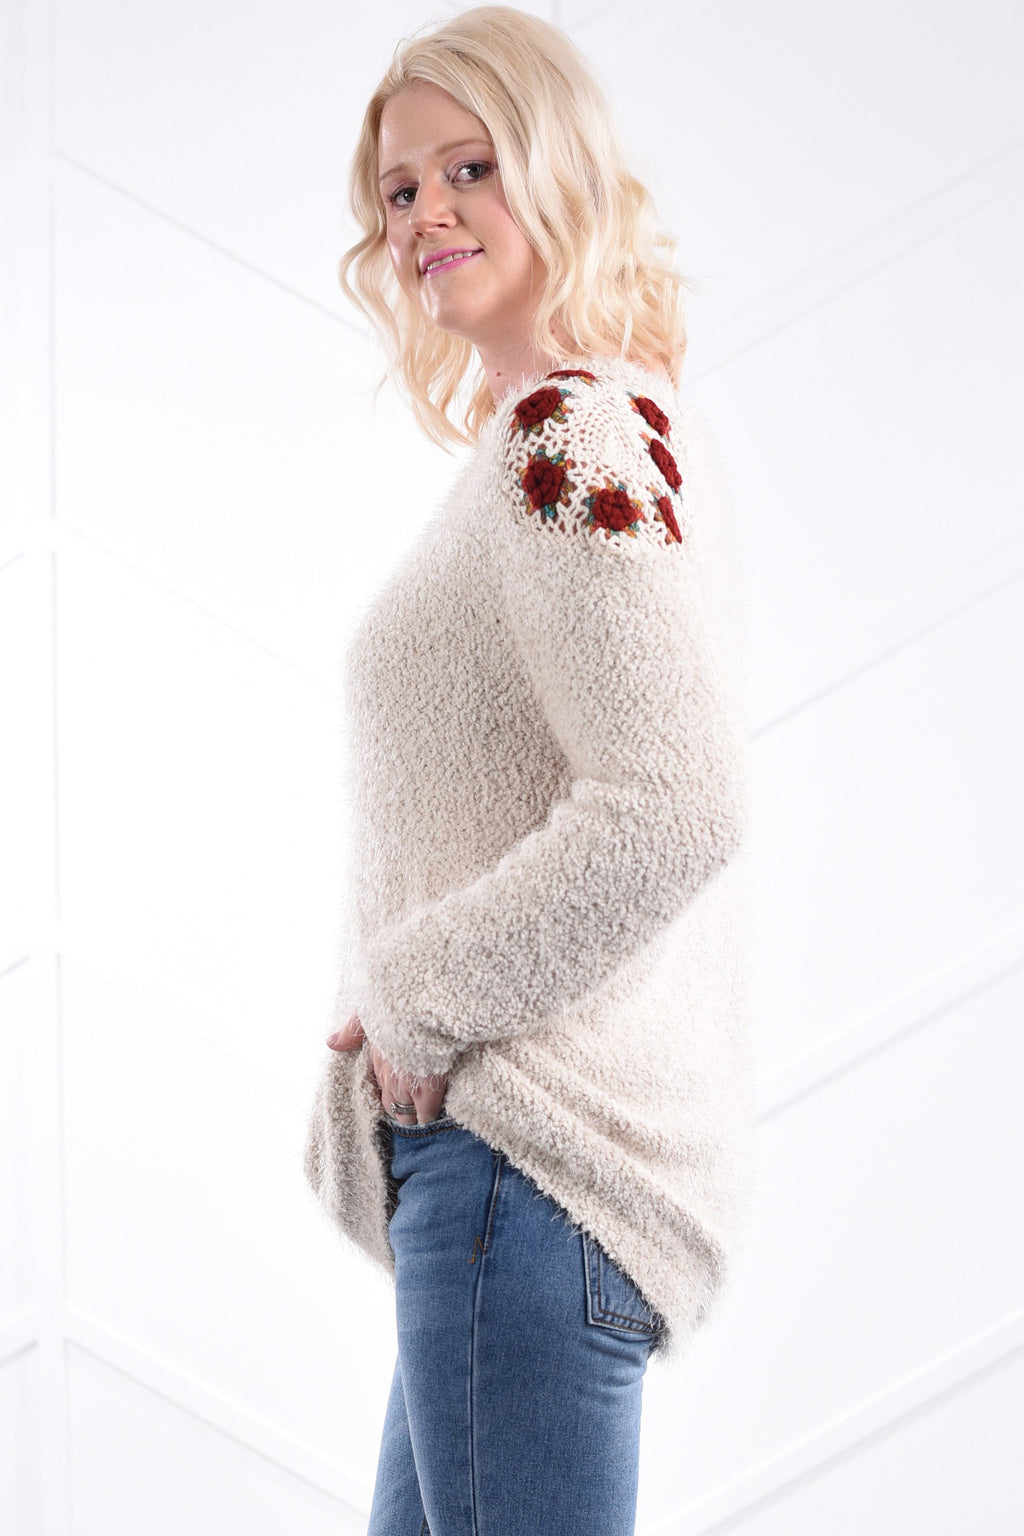 Mara Crochet Sweater - Cream - Strong Confident You